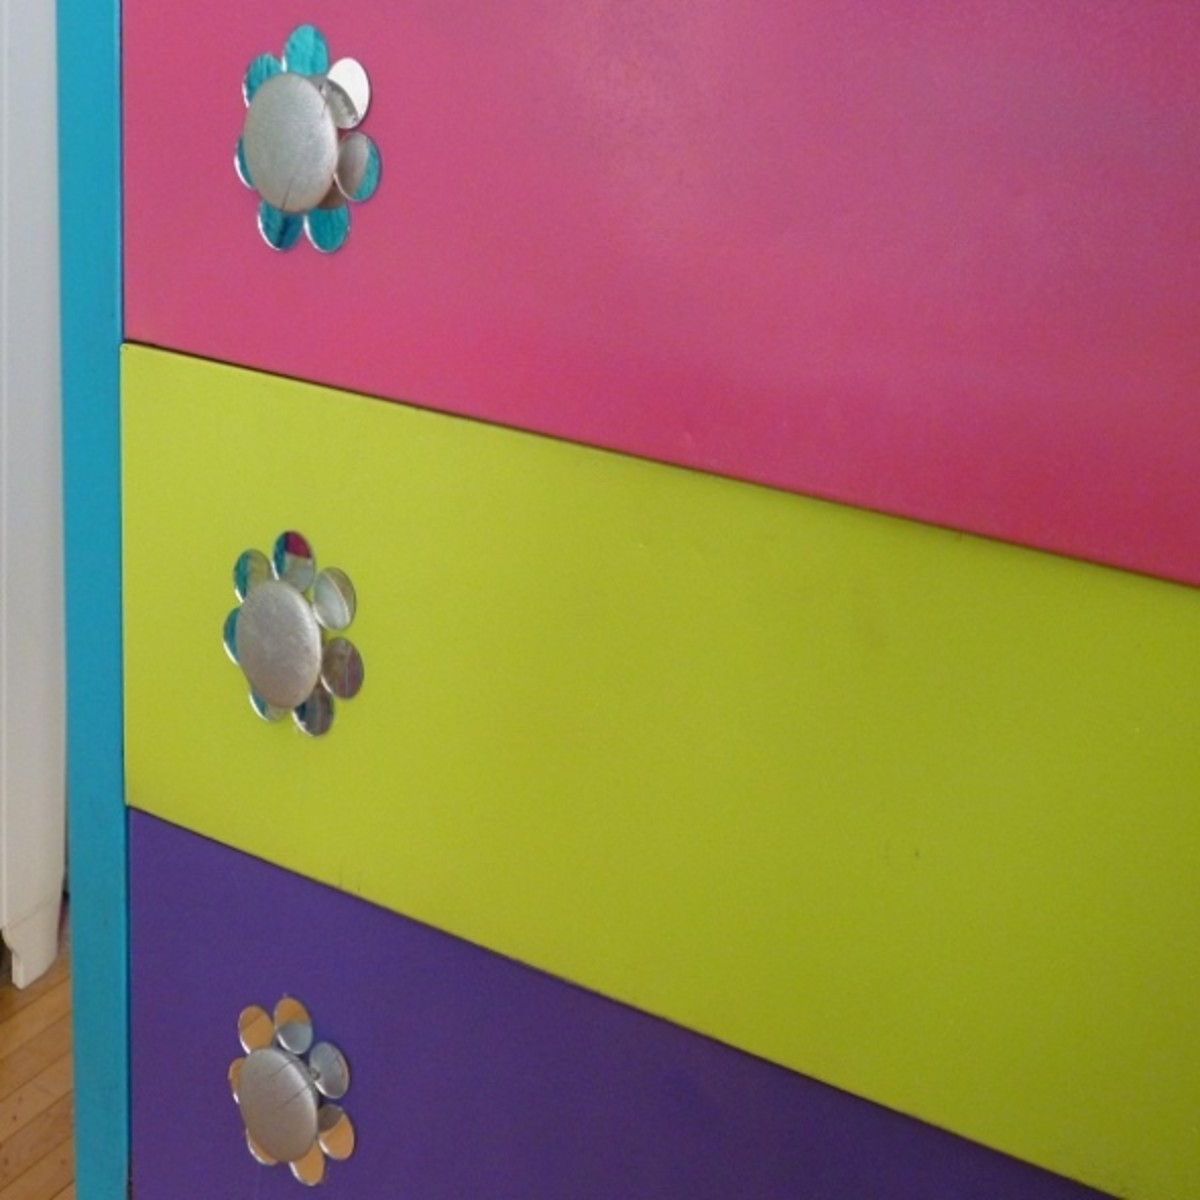 Upcycled DIY Dresser Drawer Detail - Drawers painted in colors to reinforce room's palette.